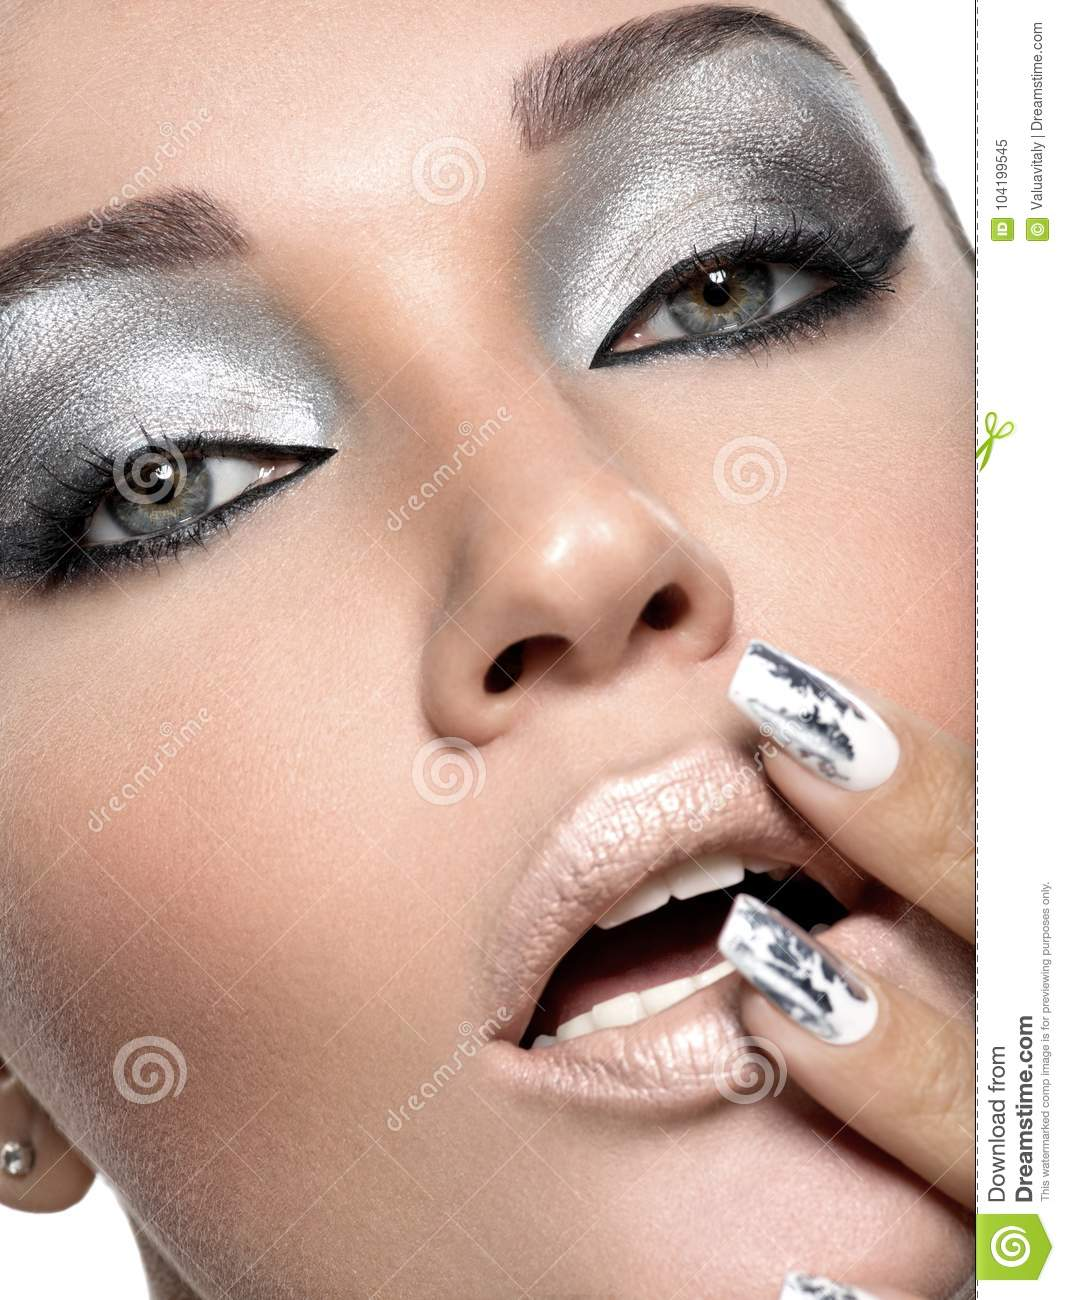 Beautiful Girl With The Silver Makeup And Nails. Stock Image - Image ...